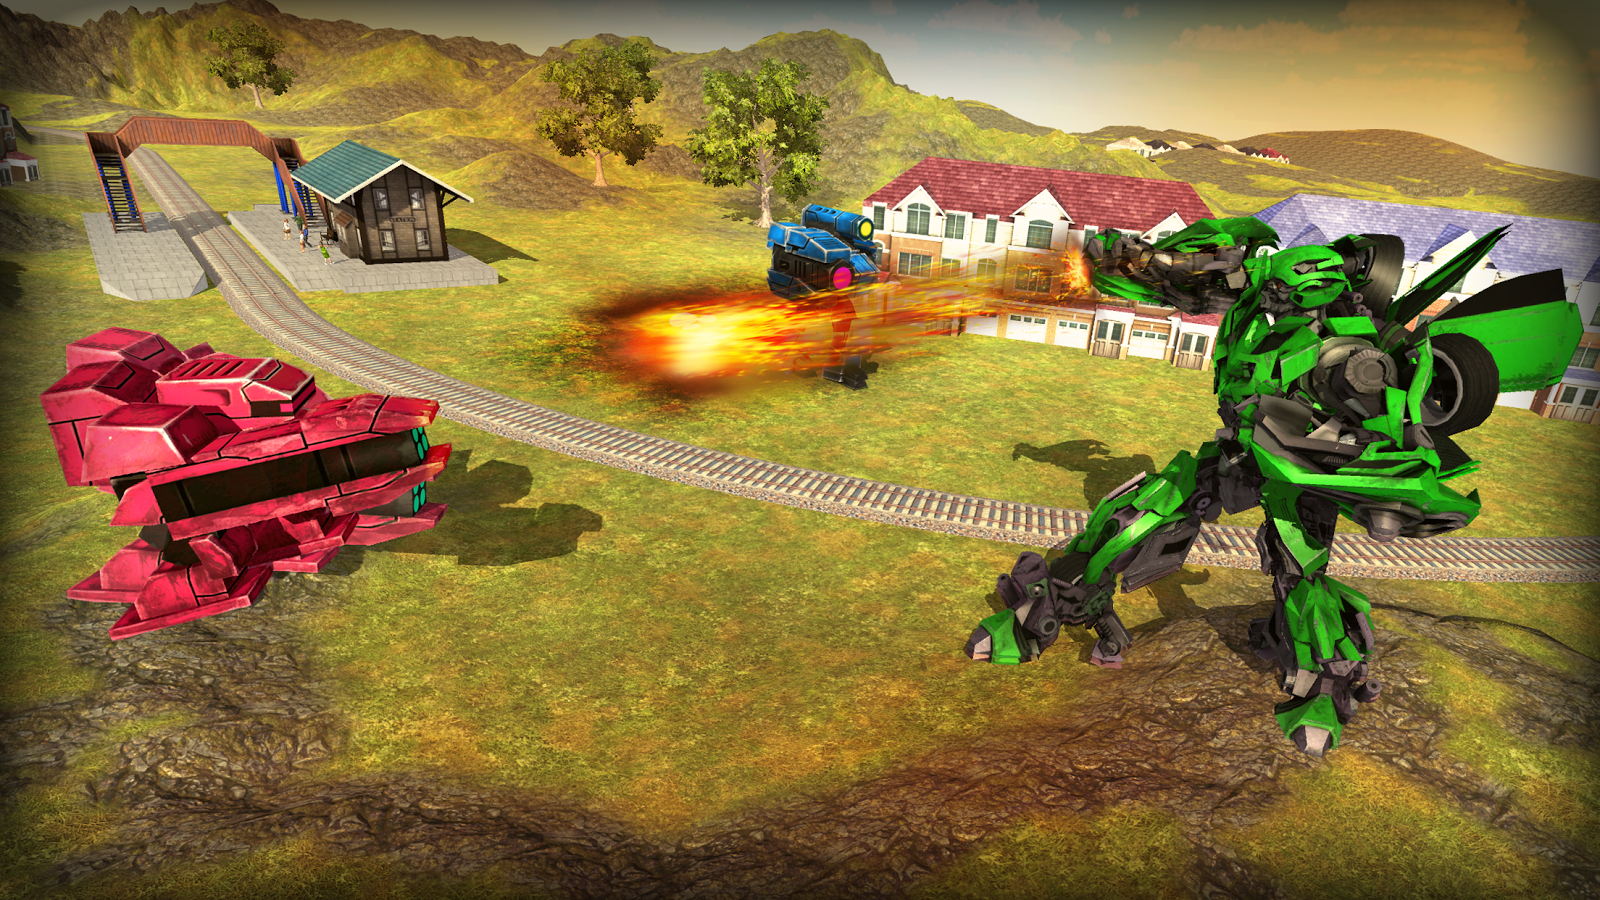 Future Subway Euro Train Transformation Robot War- screenshot